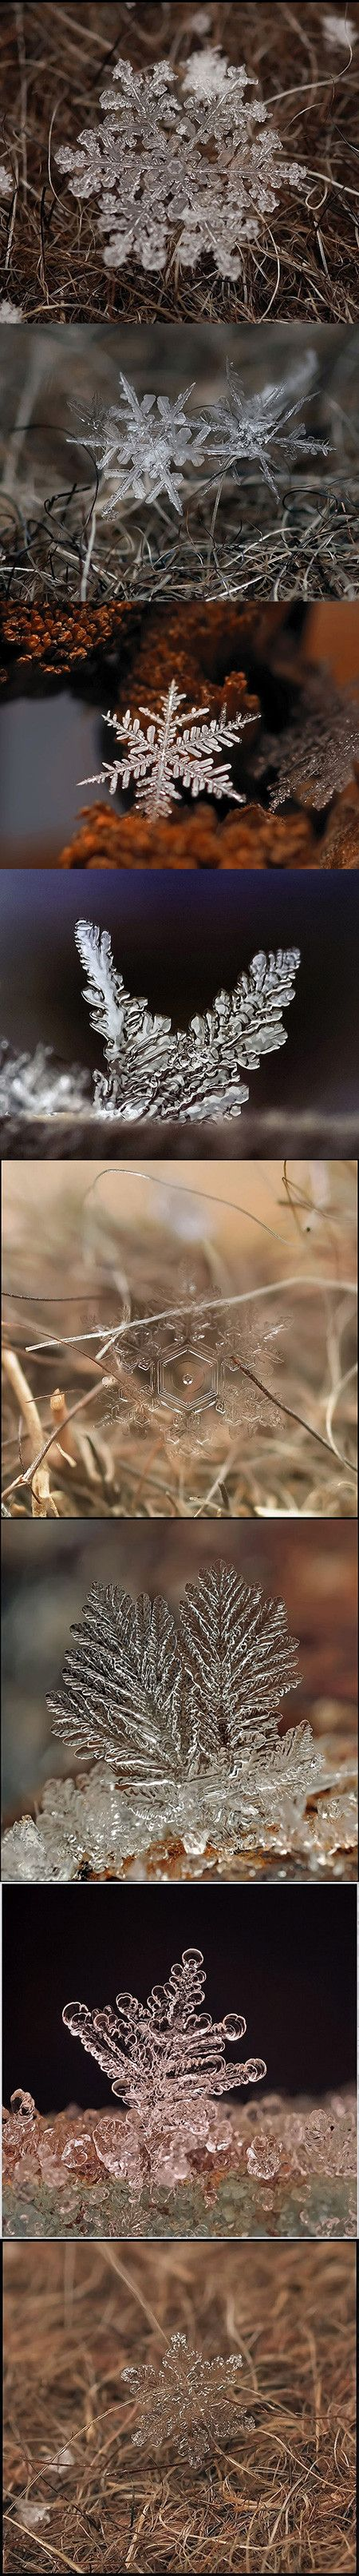 Andrew Osokin is a Russian photographer based in Moscow. Using a 60/90mm macro lens and his Nikon D90, he captured these amazing snowflake images.